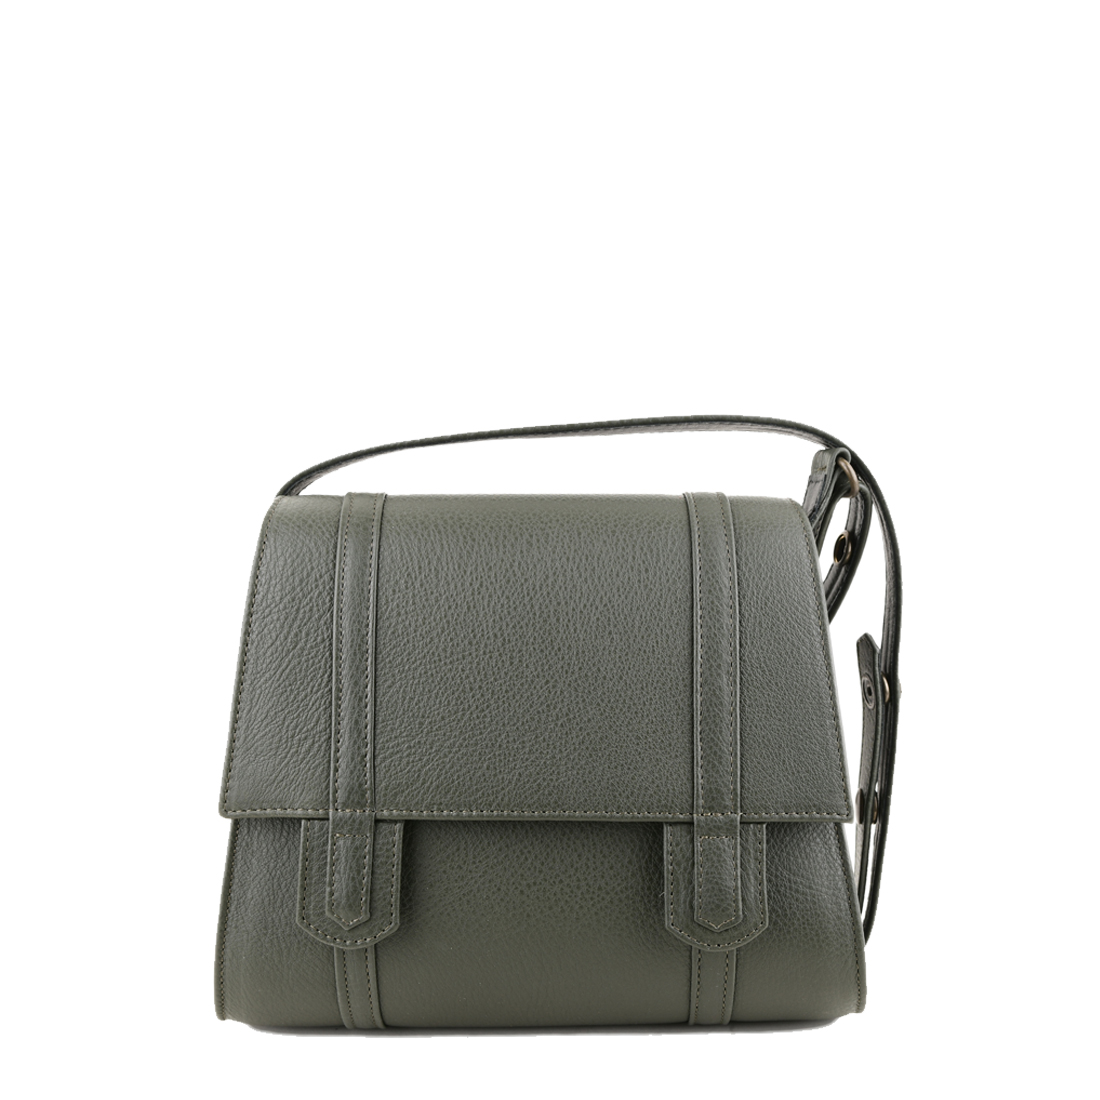 Chloe Loden Across Body Leather Bag